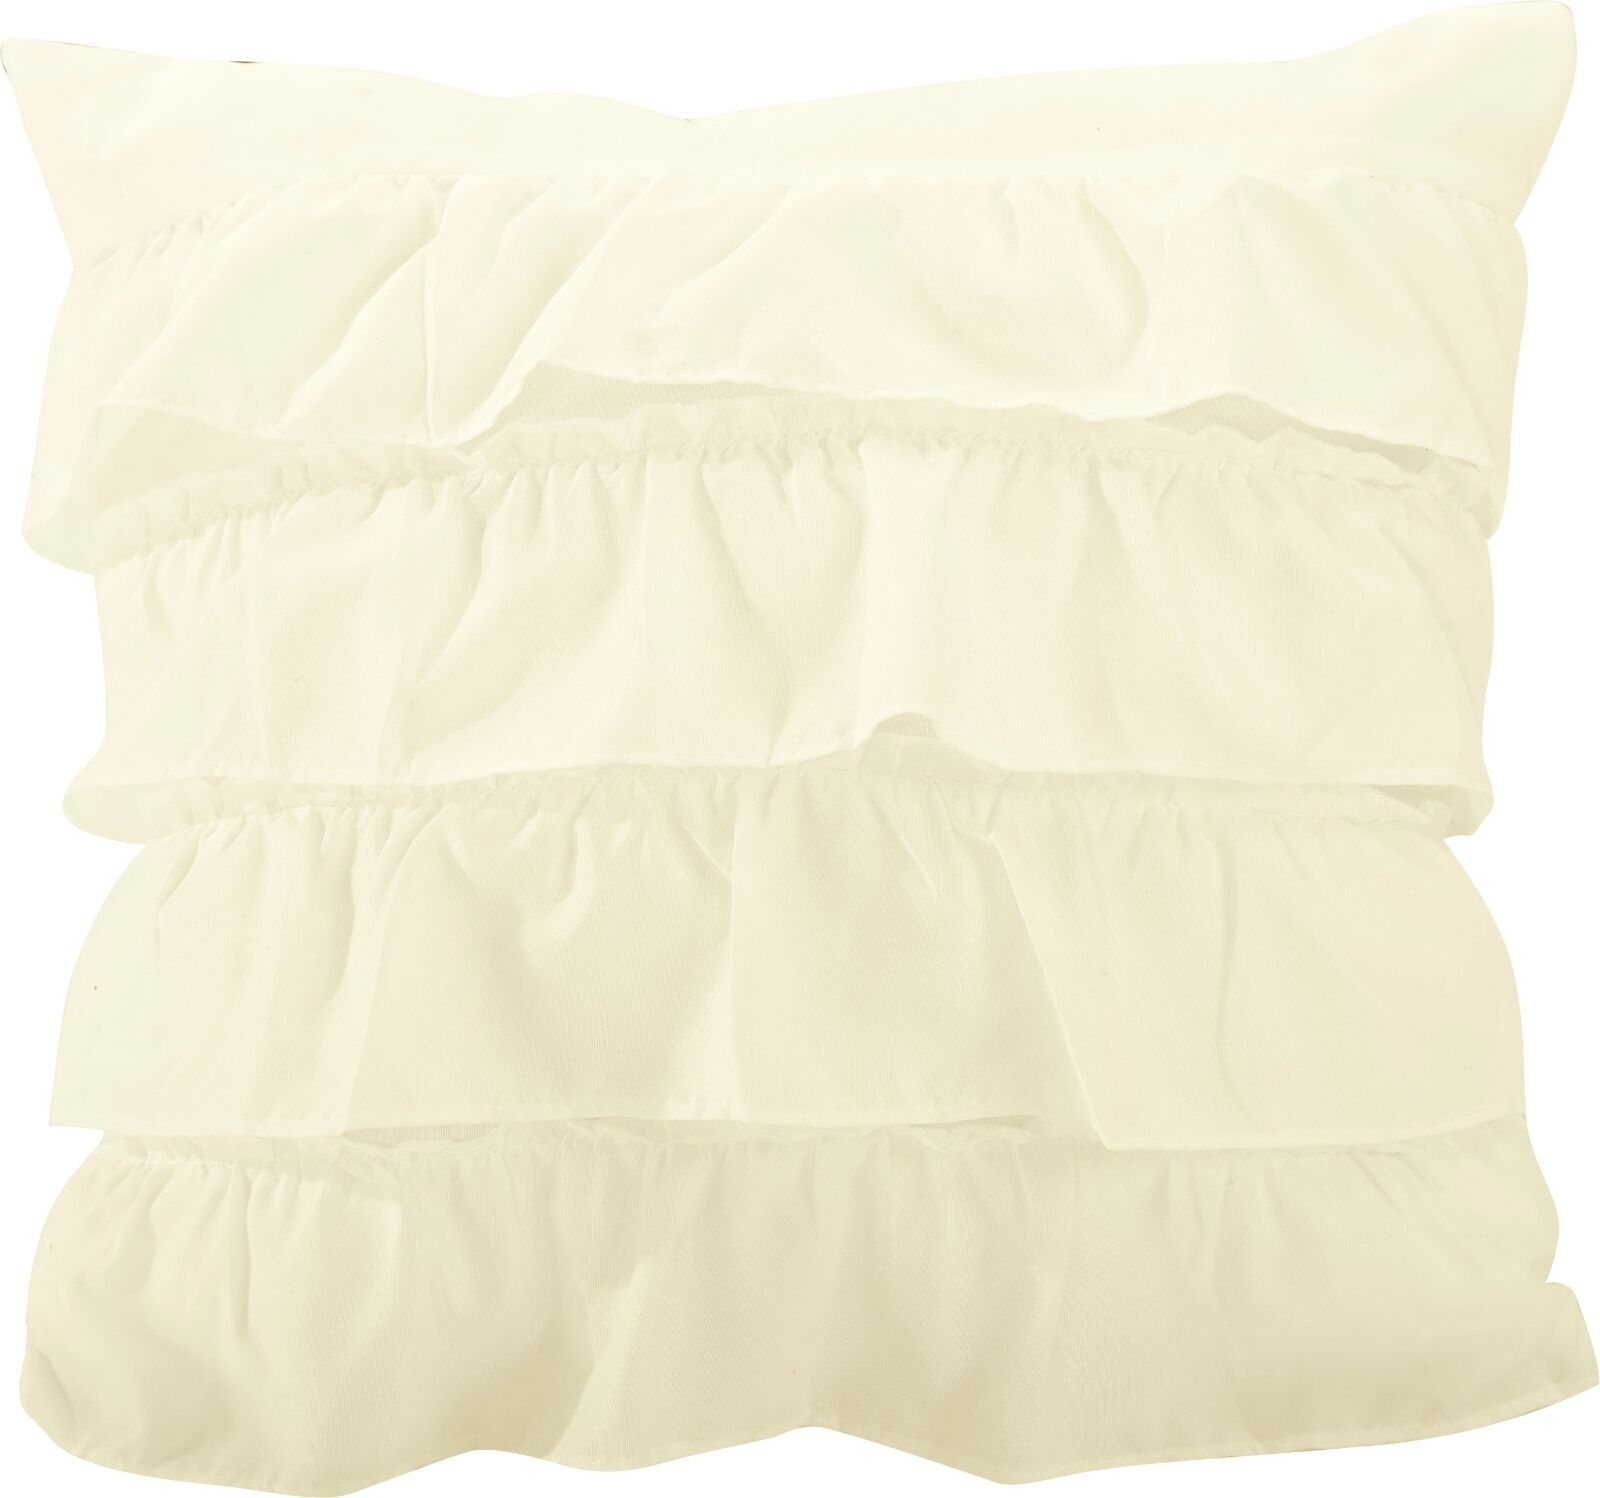 "Katy Ruffled Cushion Solid Square 18"" Throw Plush Pillow - Cream"